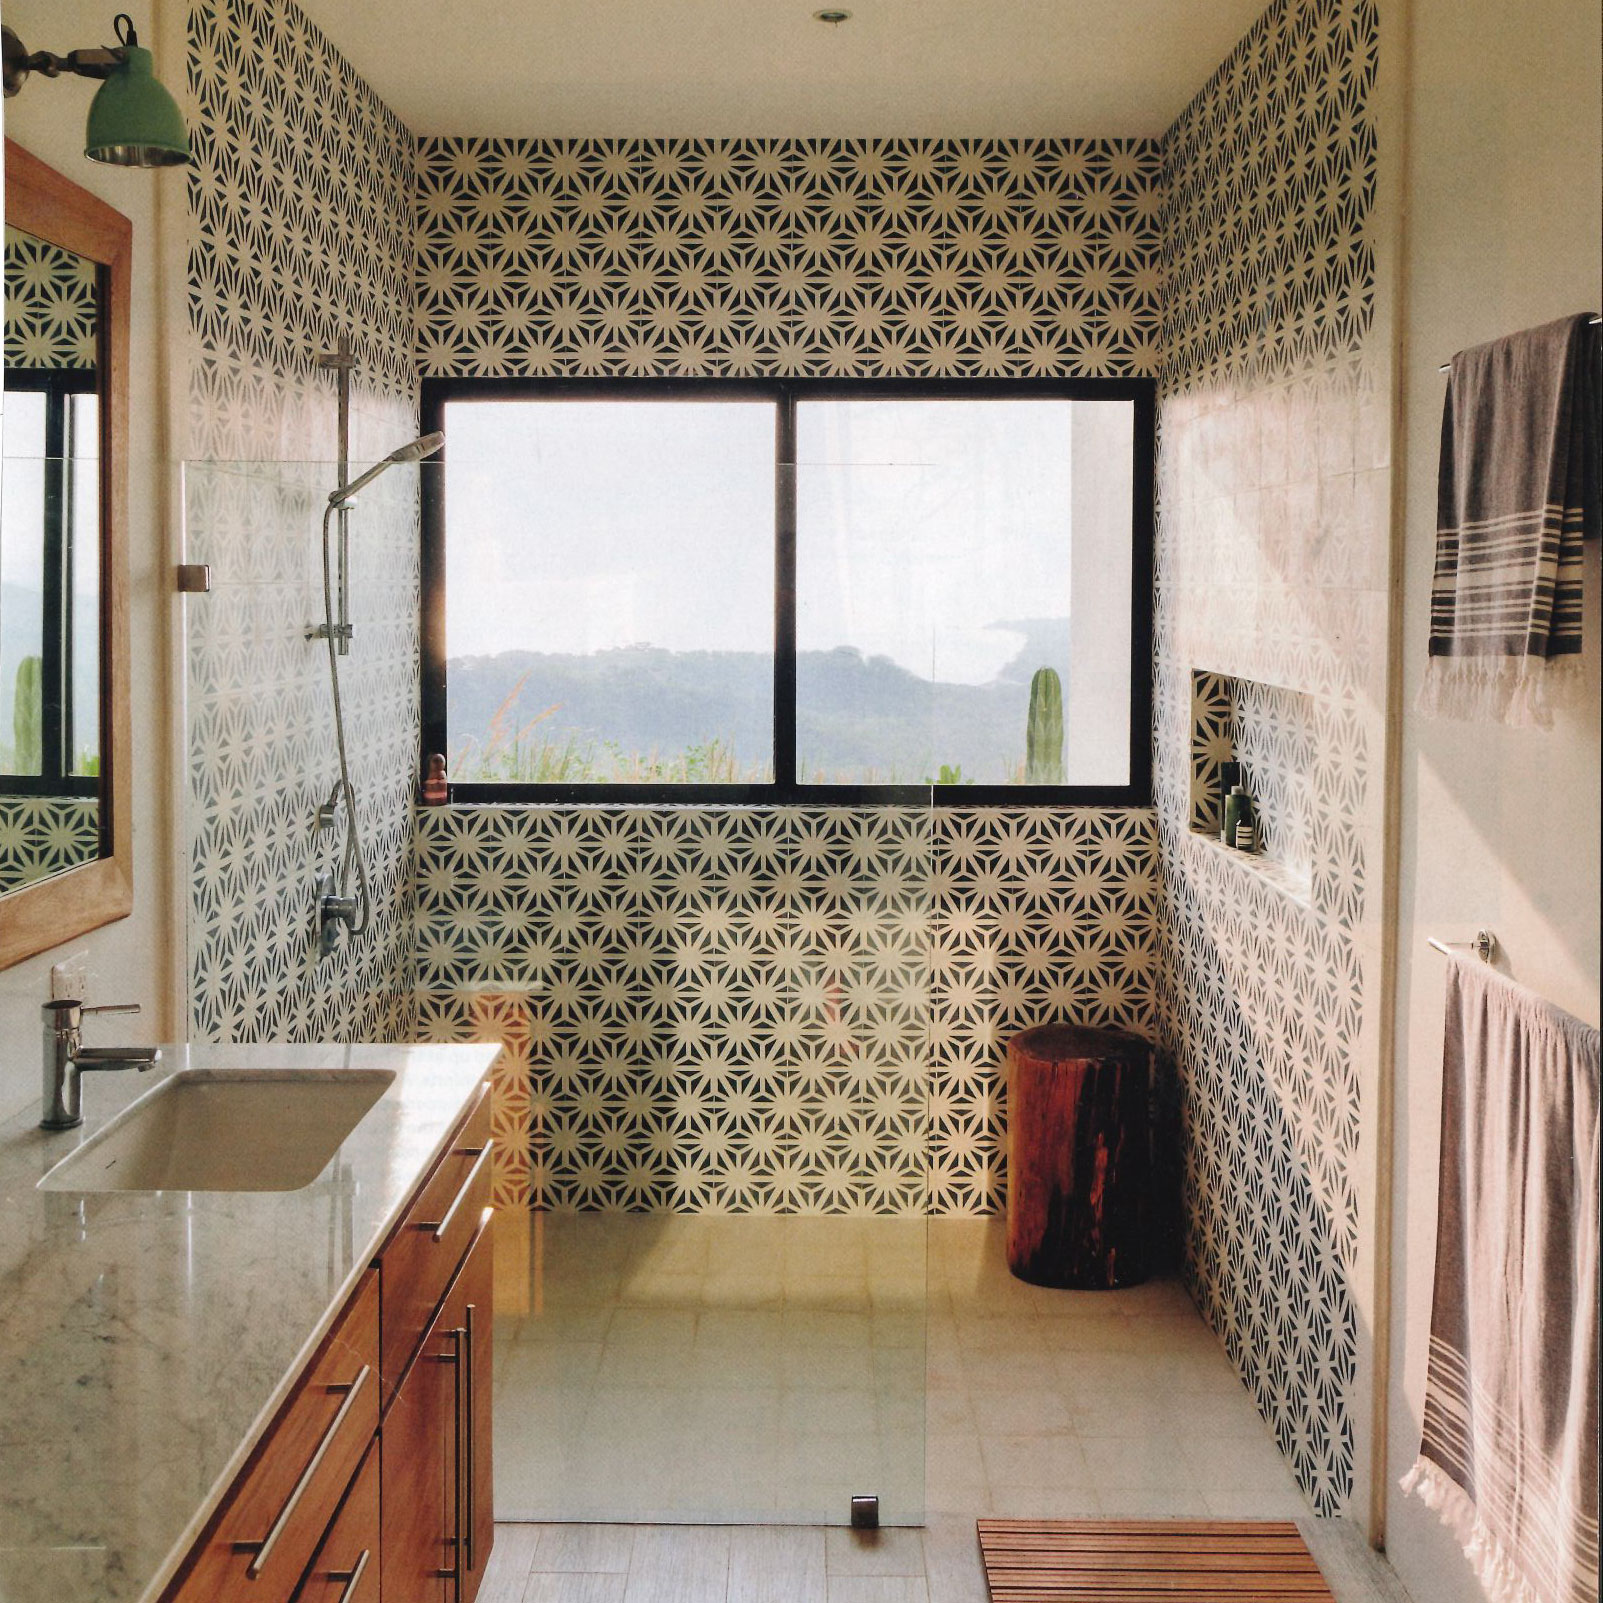 Have you seen this tunis cement tile bathroom granada tile the secret to a beautiful space starts with a foundation of our cement tile patterns many of our most popular concrete tile designs like our fez encaustic dailygadgetfo Image collections